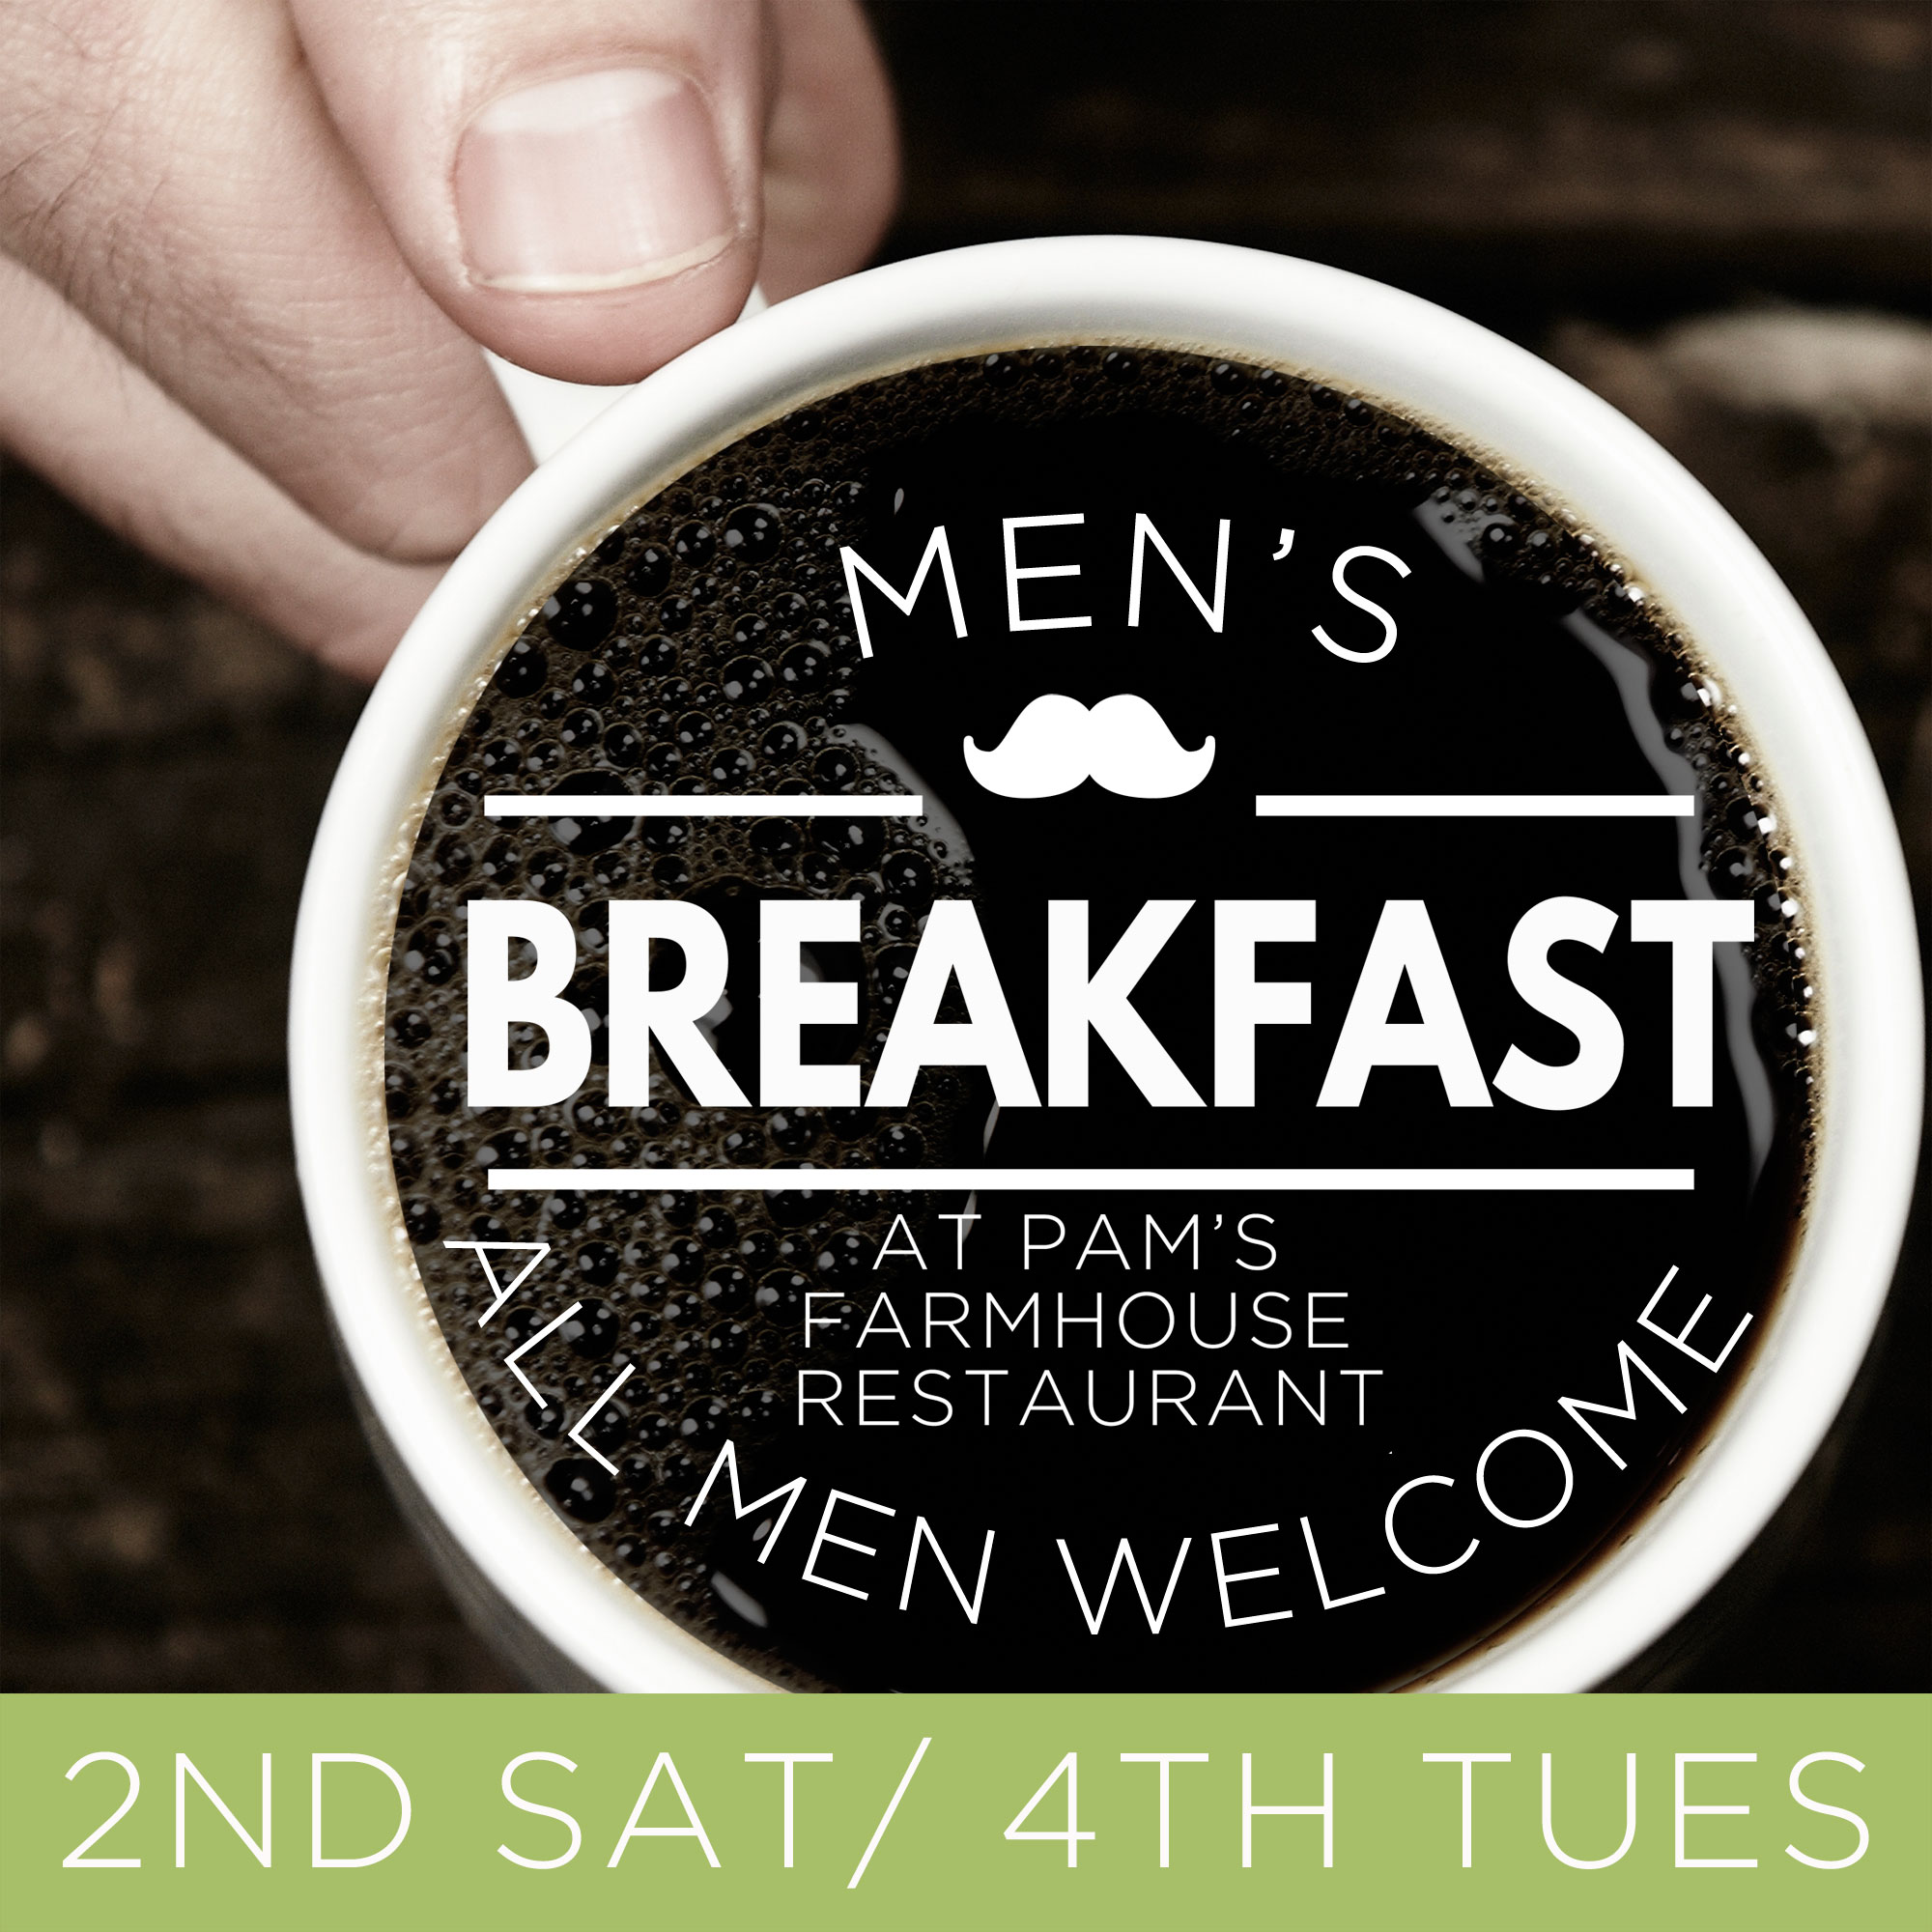 Men of all ages are invited to come together for a time of fellowship at Pam's Farmhouse each month throughout the summer. If you can make it during the week, feel free to join us on the 4th Tuesday of each month at 7:00 am. If you can make it during the weekend, feel free to join us on the 2nd Saturday of each month at 9:00 am. Or, if you've got the free time, you can come to BOTH!